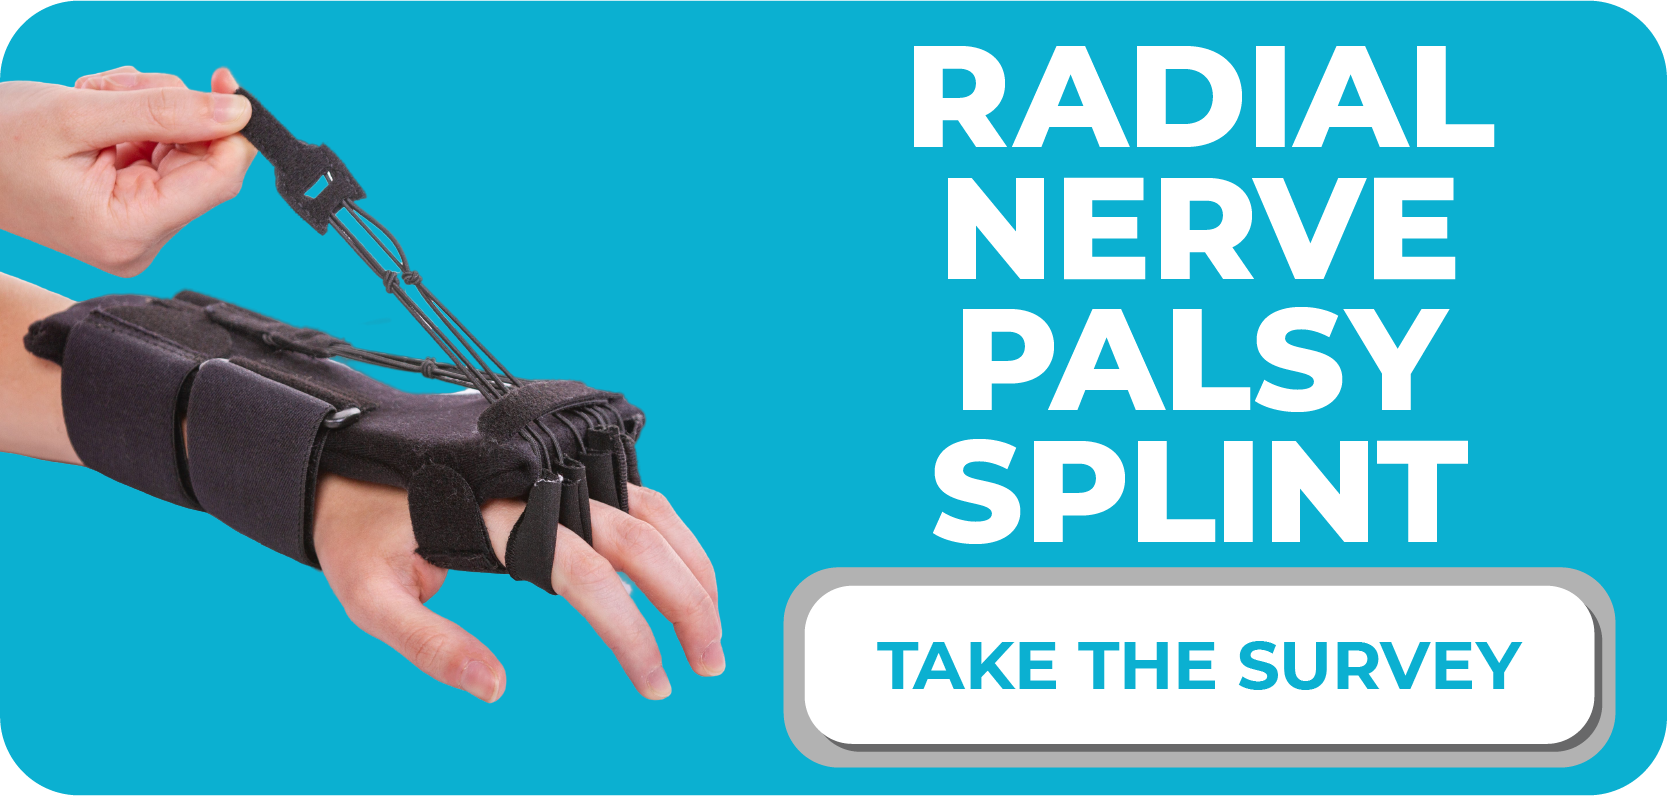 click here to take the radial nerve palsy splint survey and let us know how it worked for you